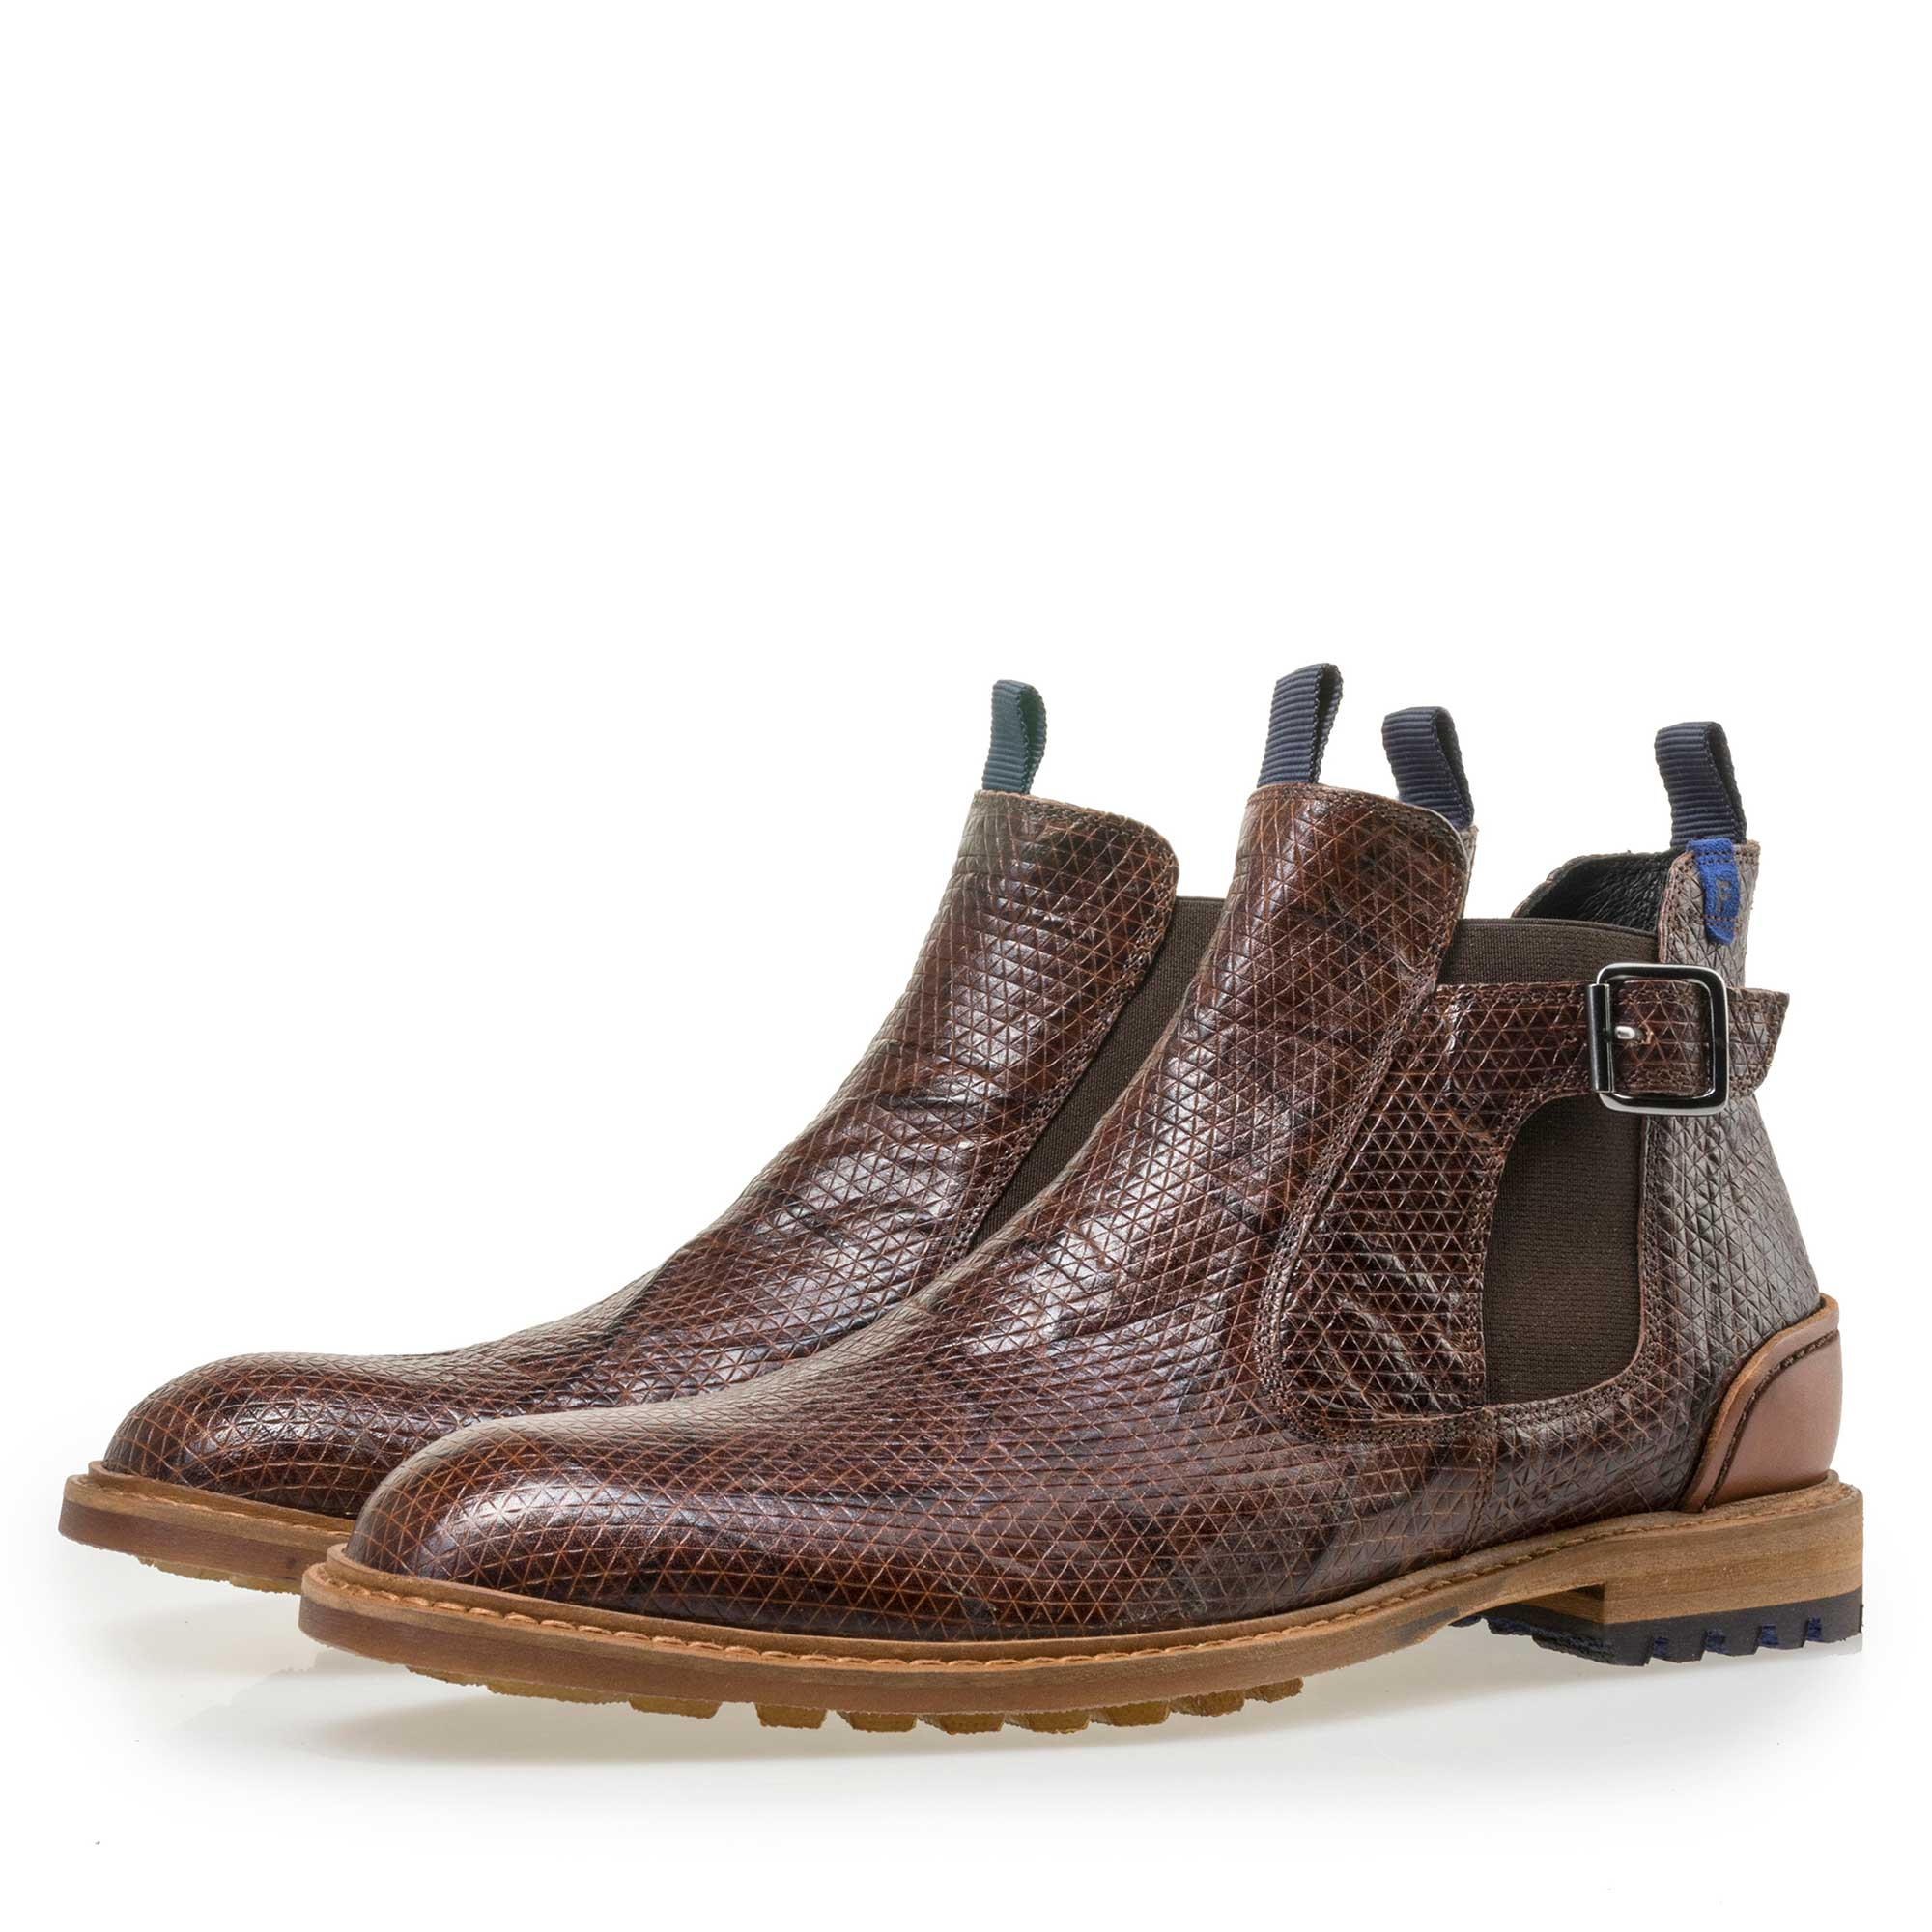 10912/05 - Floris van Bommel men's cognac-coloured leather Chelsea boot finished with a snake print